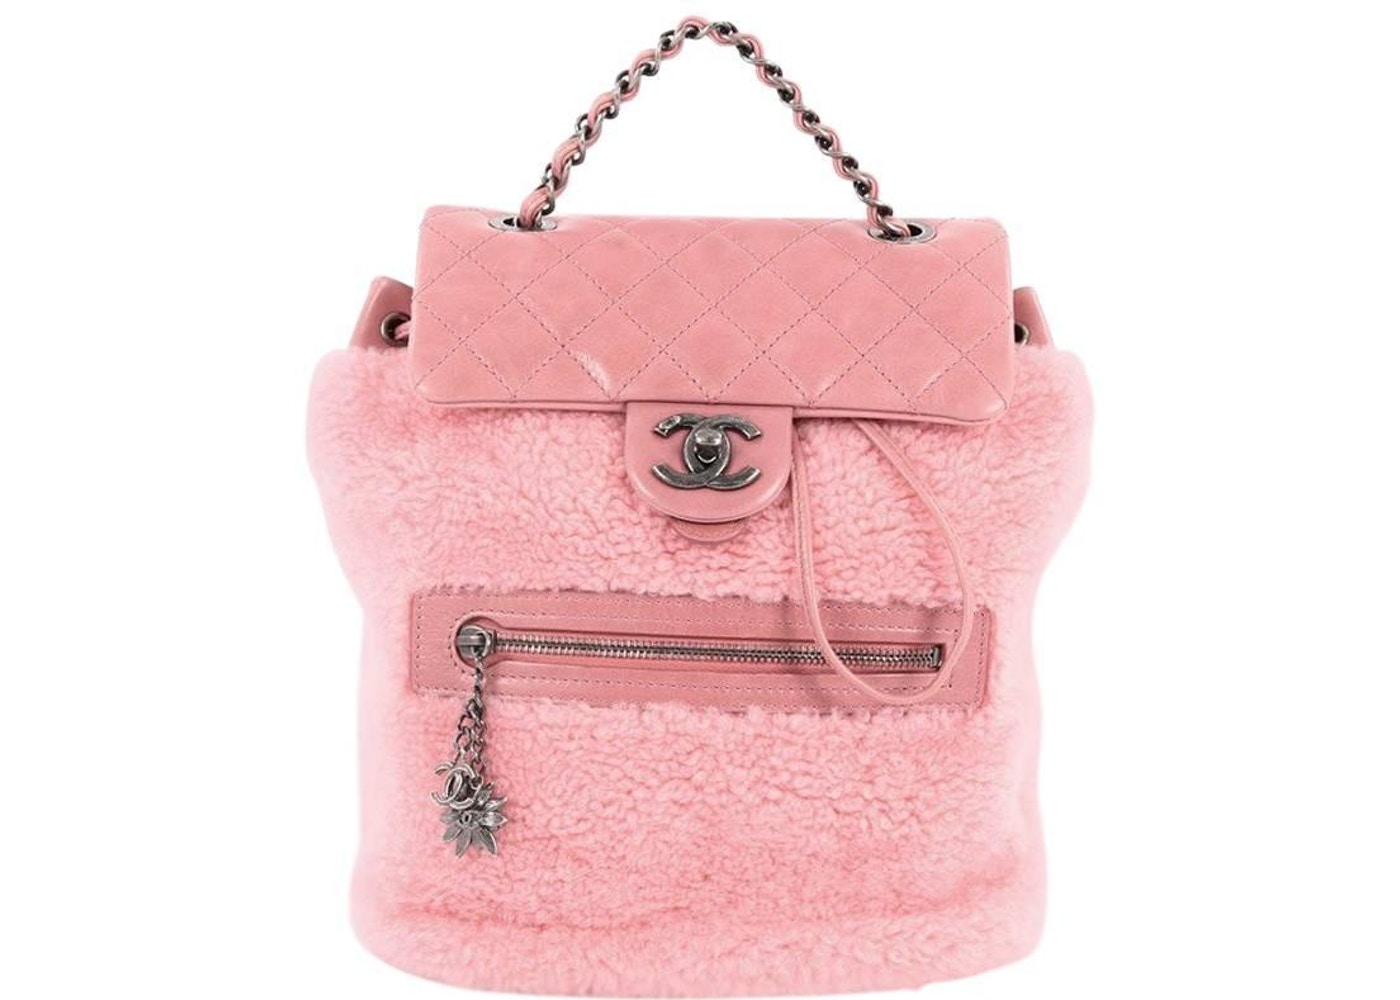 a28cdecb6277 Chanel Mountain Backpack Diamond Calfskin Pink. Diamond Calfskin Pink